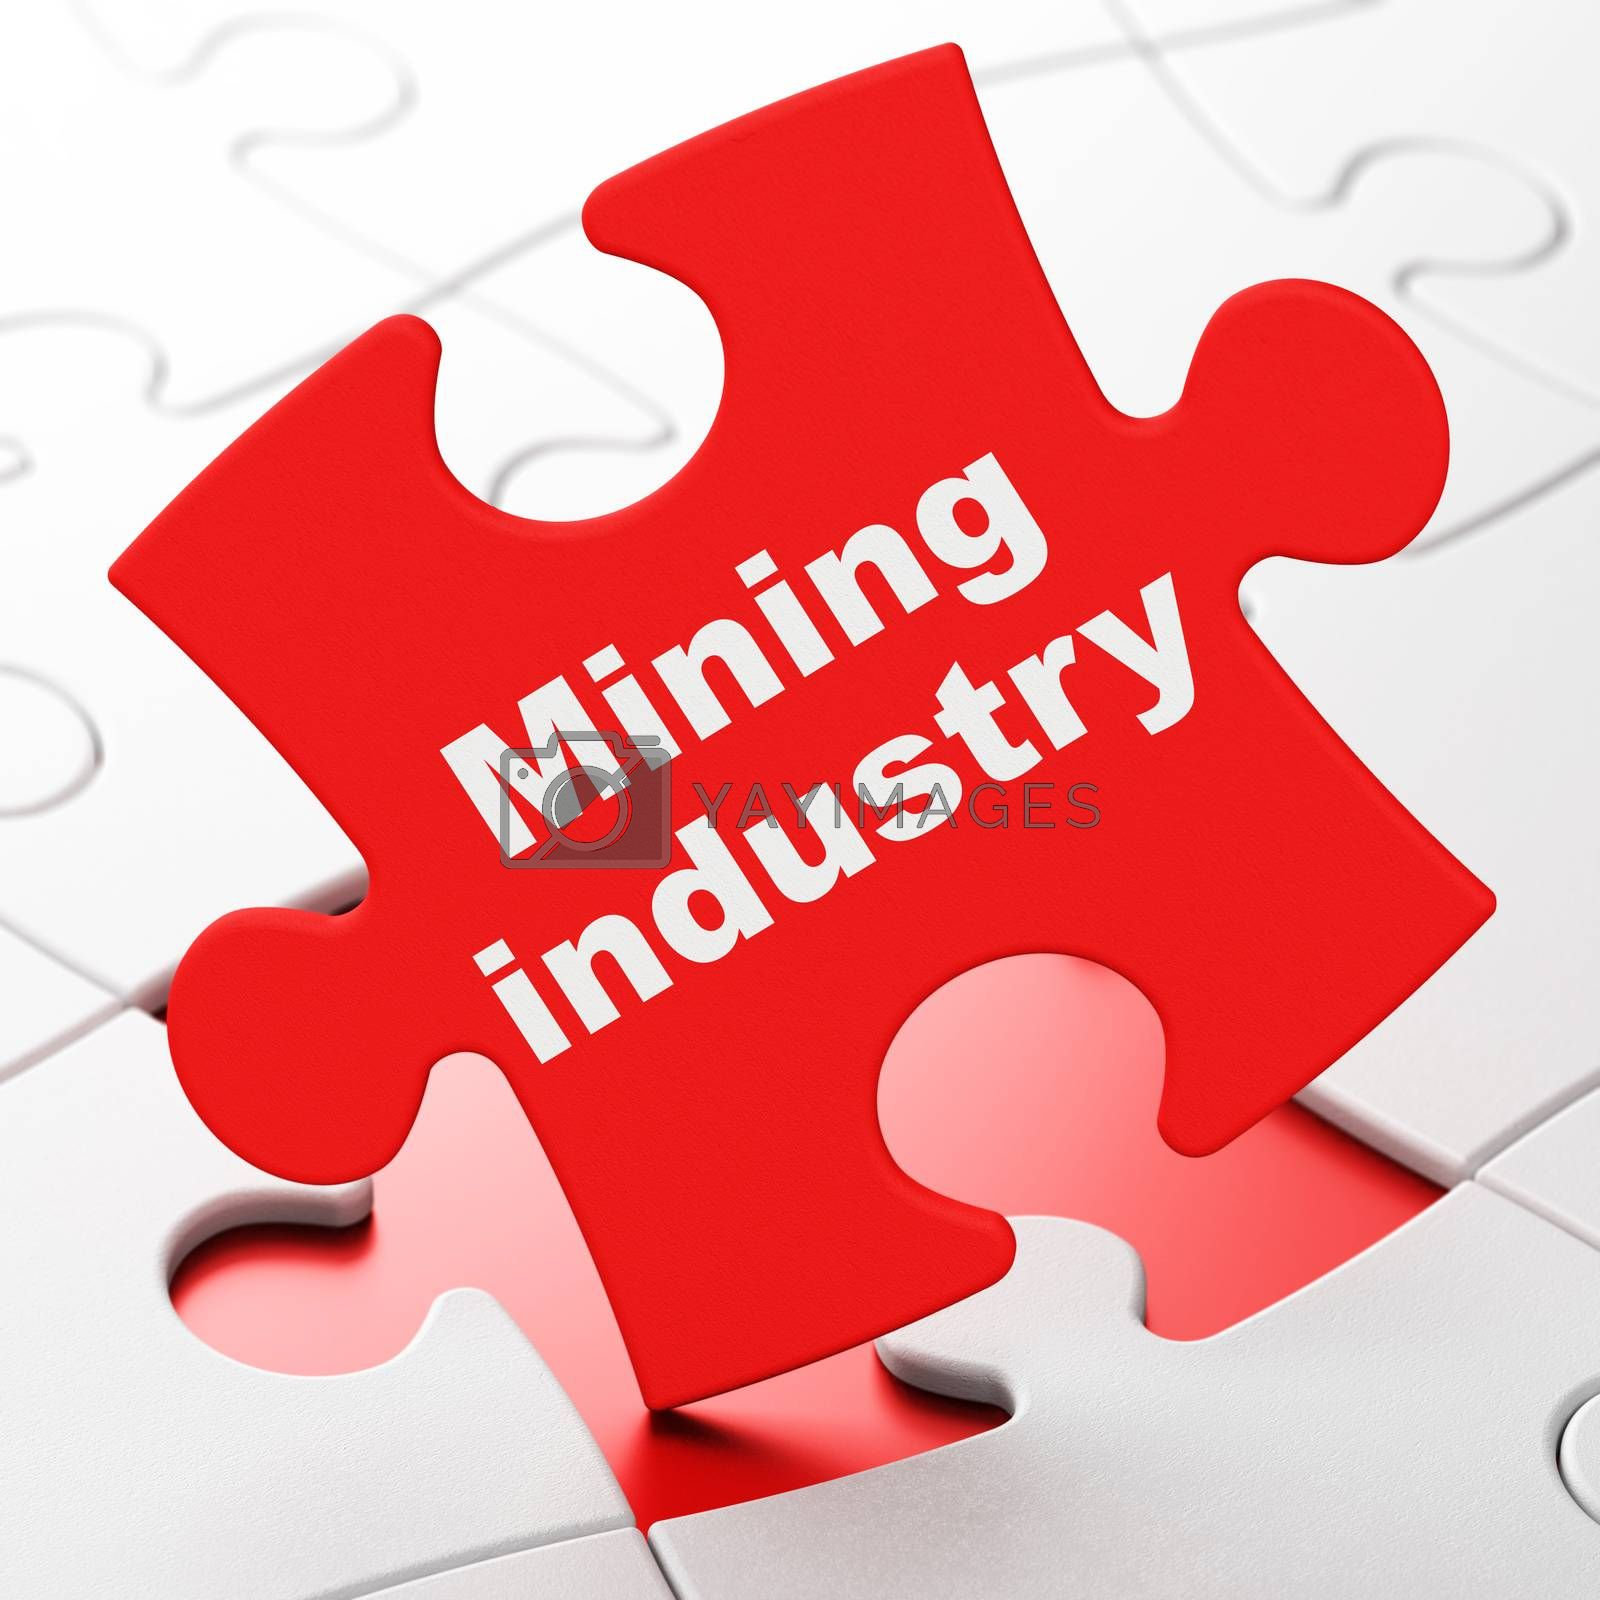 Manufacuring concept: Mining Industry on puzzle background by maxkabakov